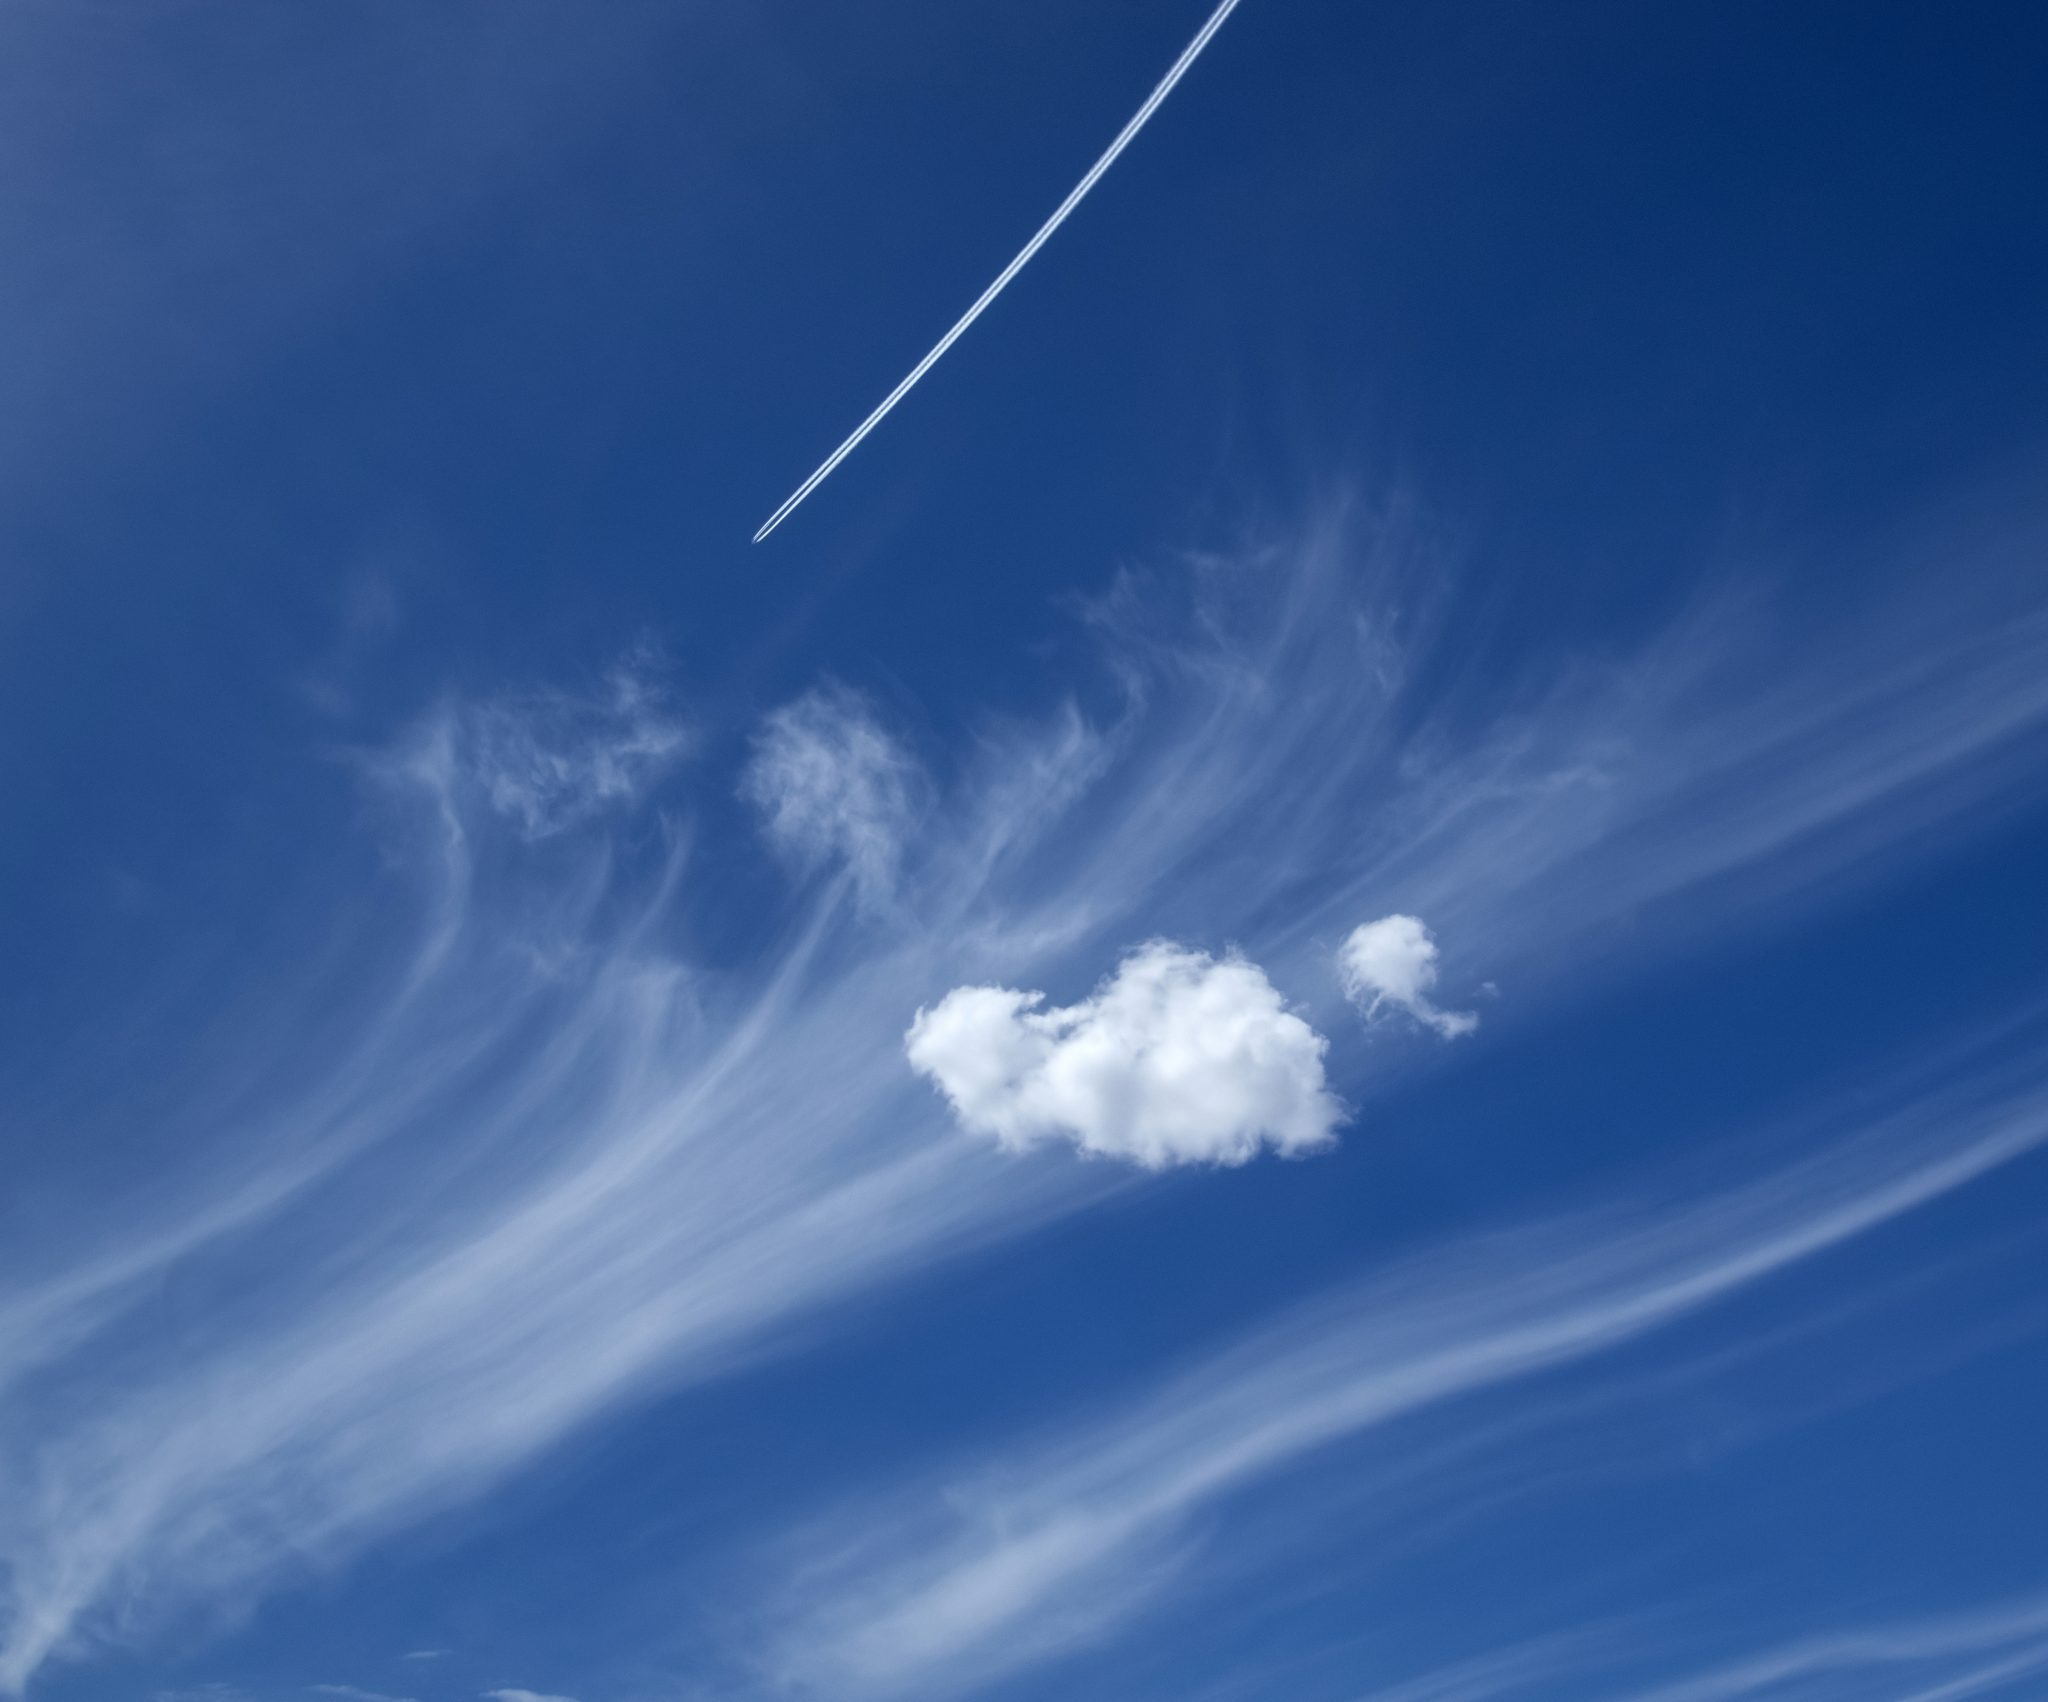 plane-penetrating-flawless-cirrus-clouds-in-a-sparkle-blue-sky